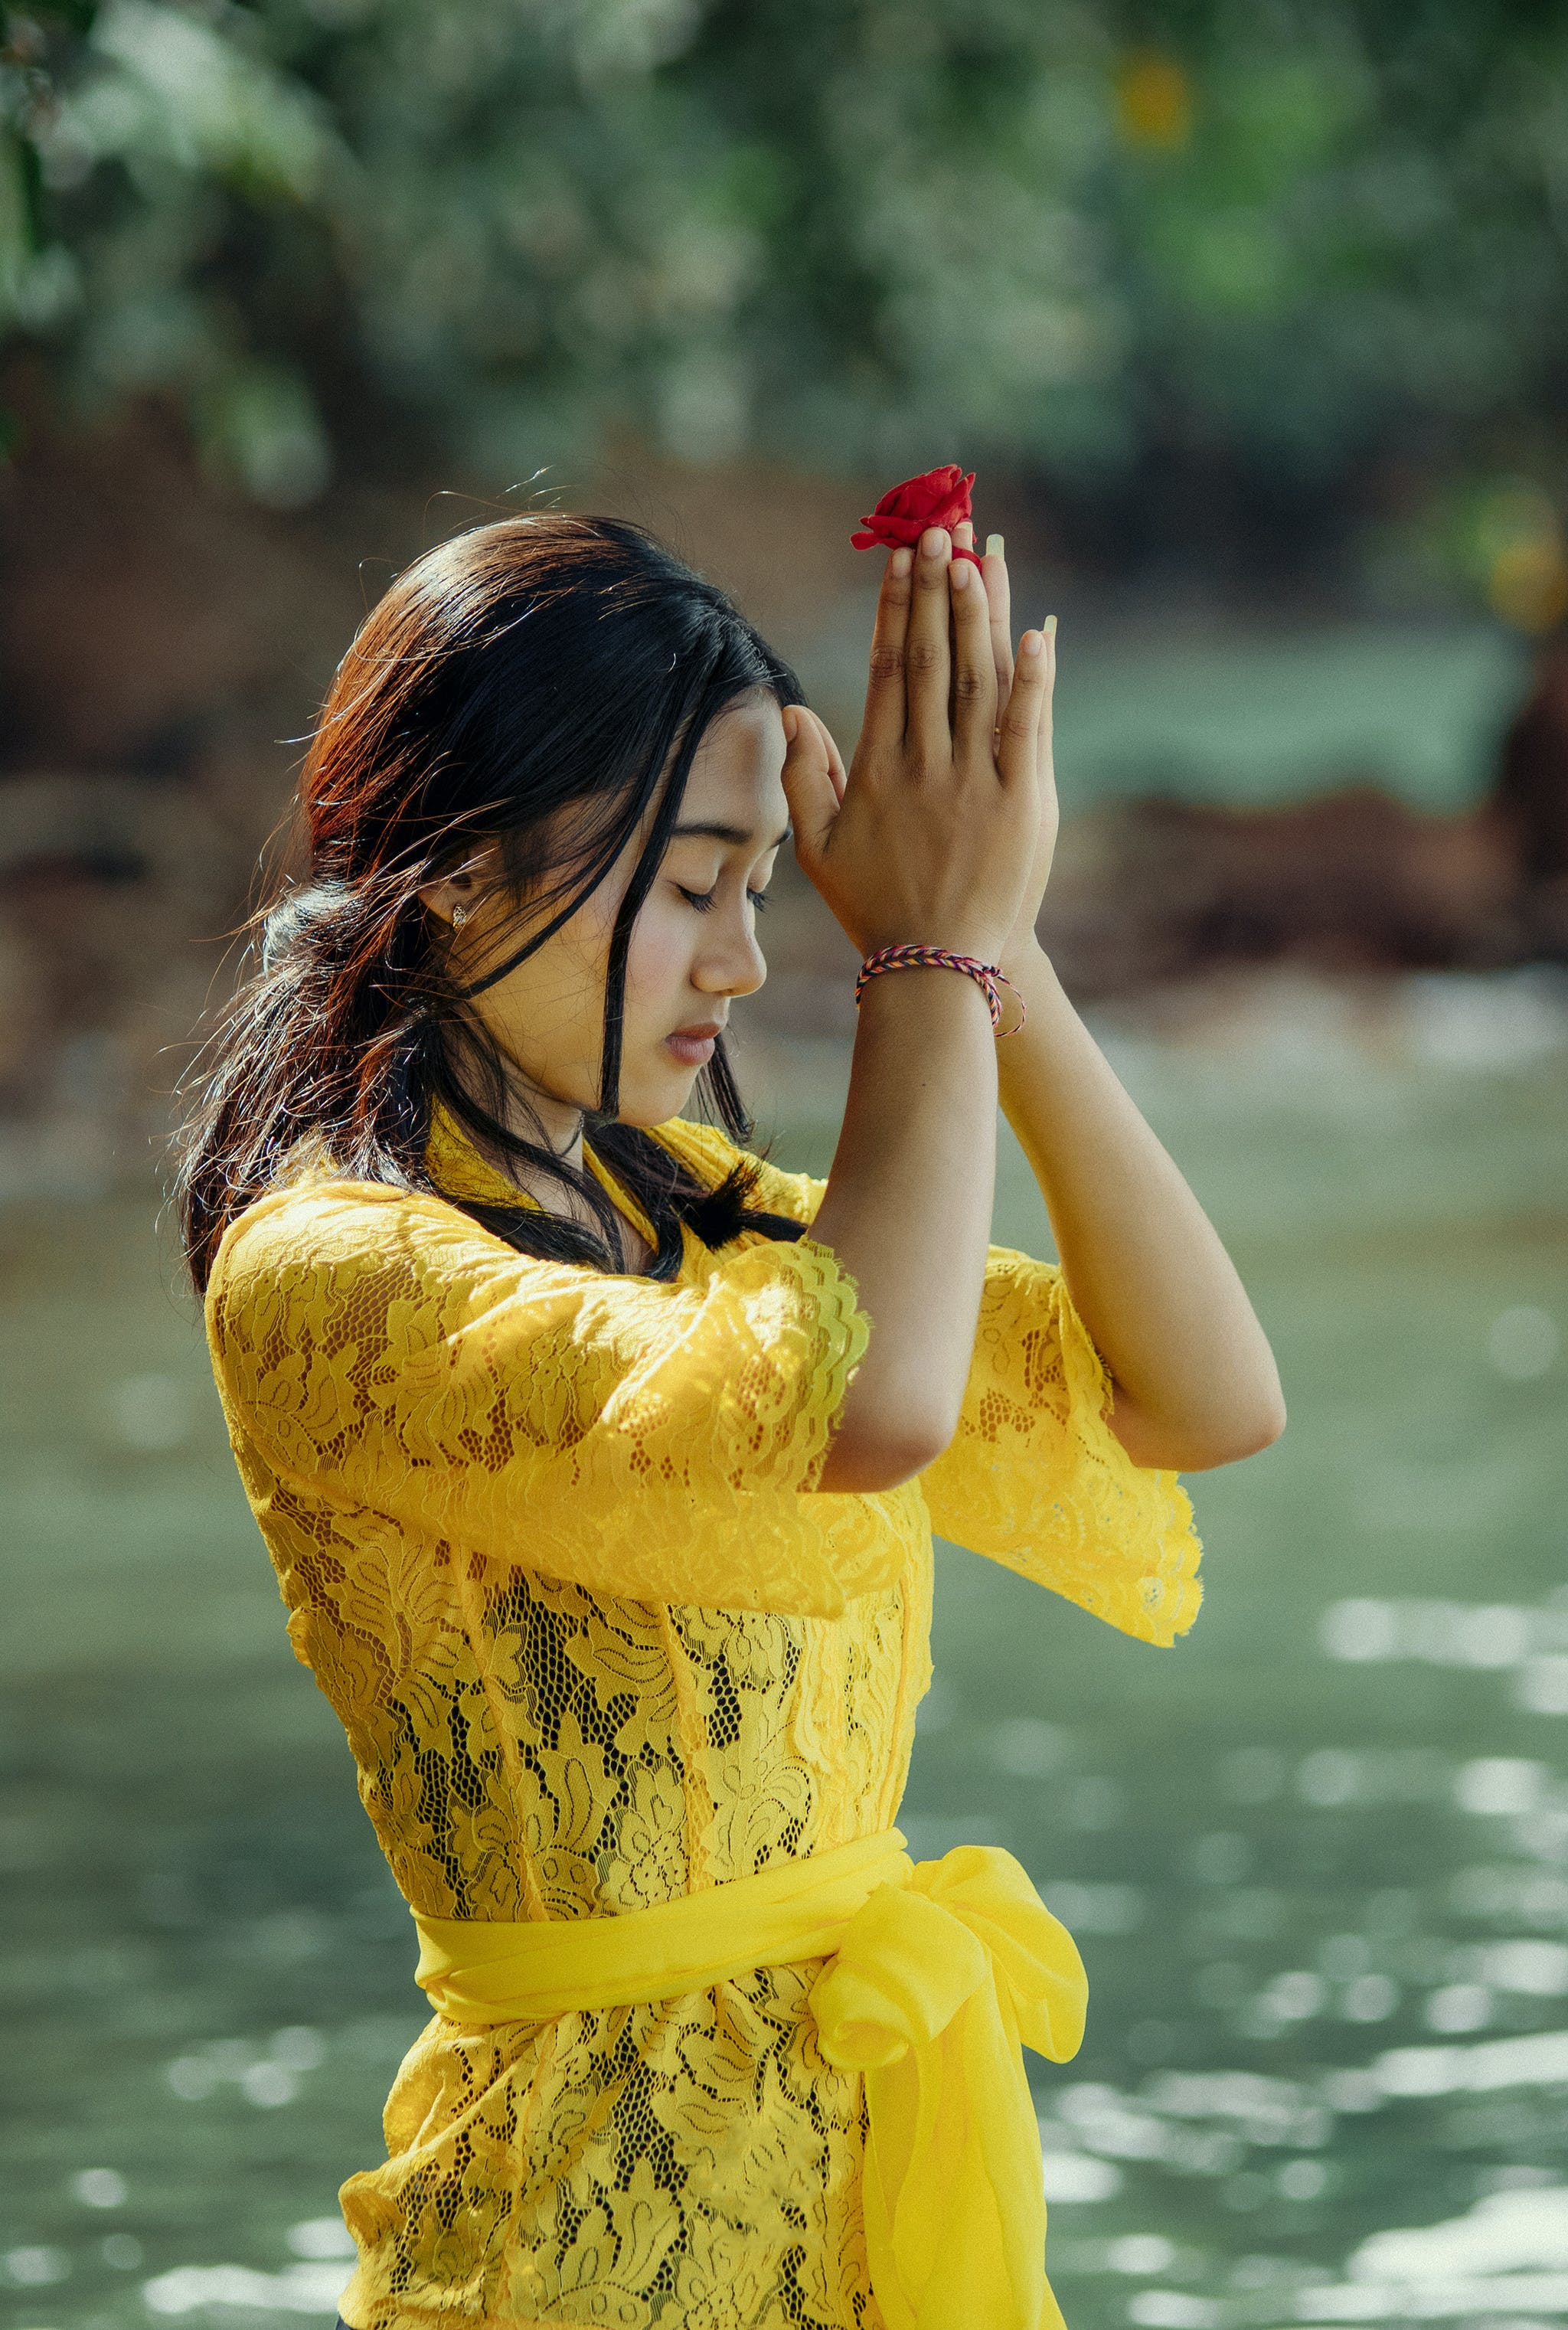 Woman in Yellow Dress Meditating